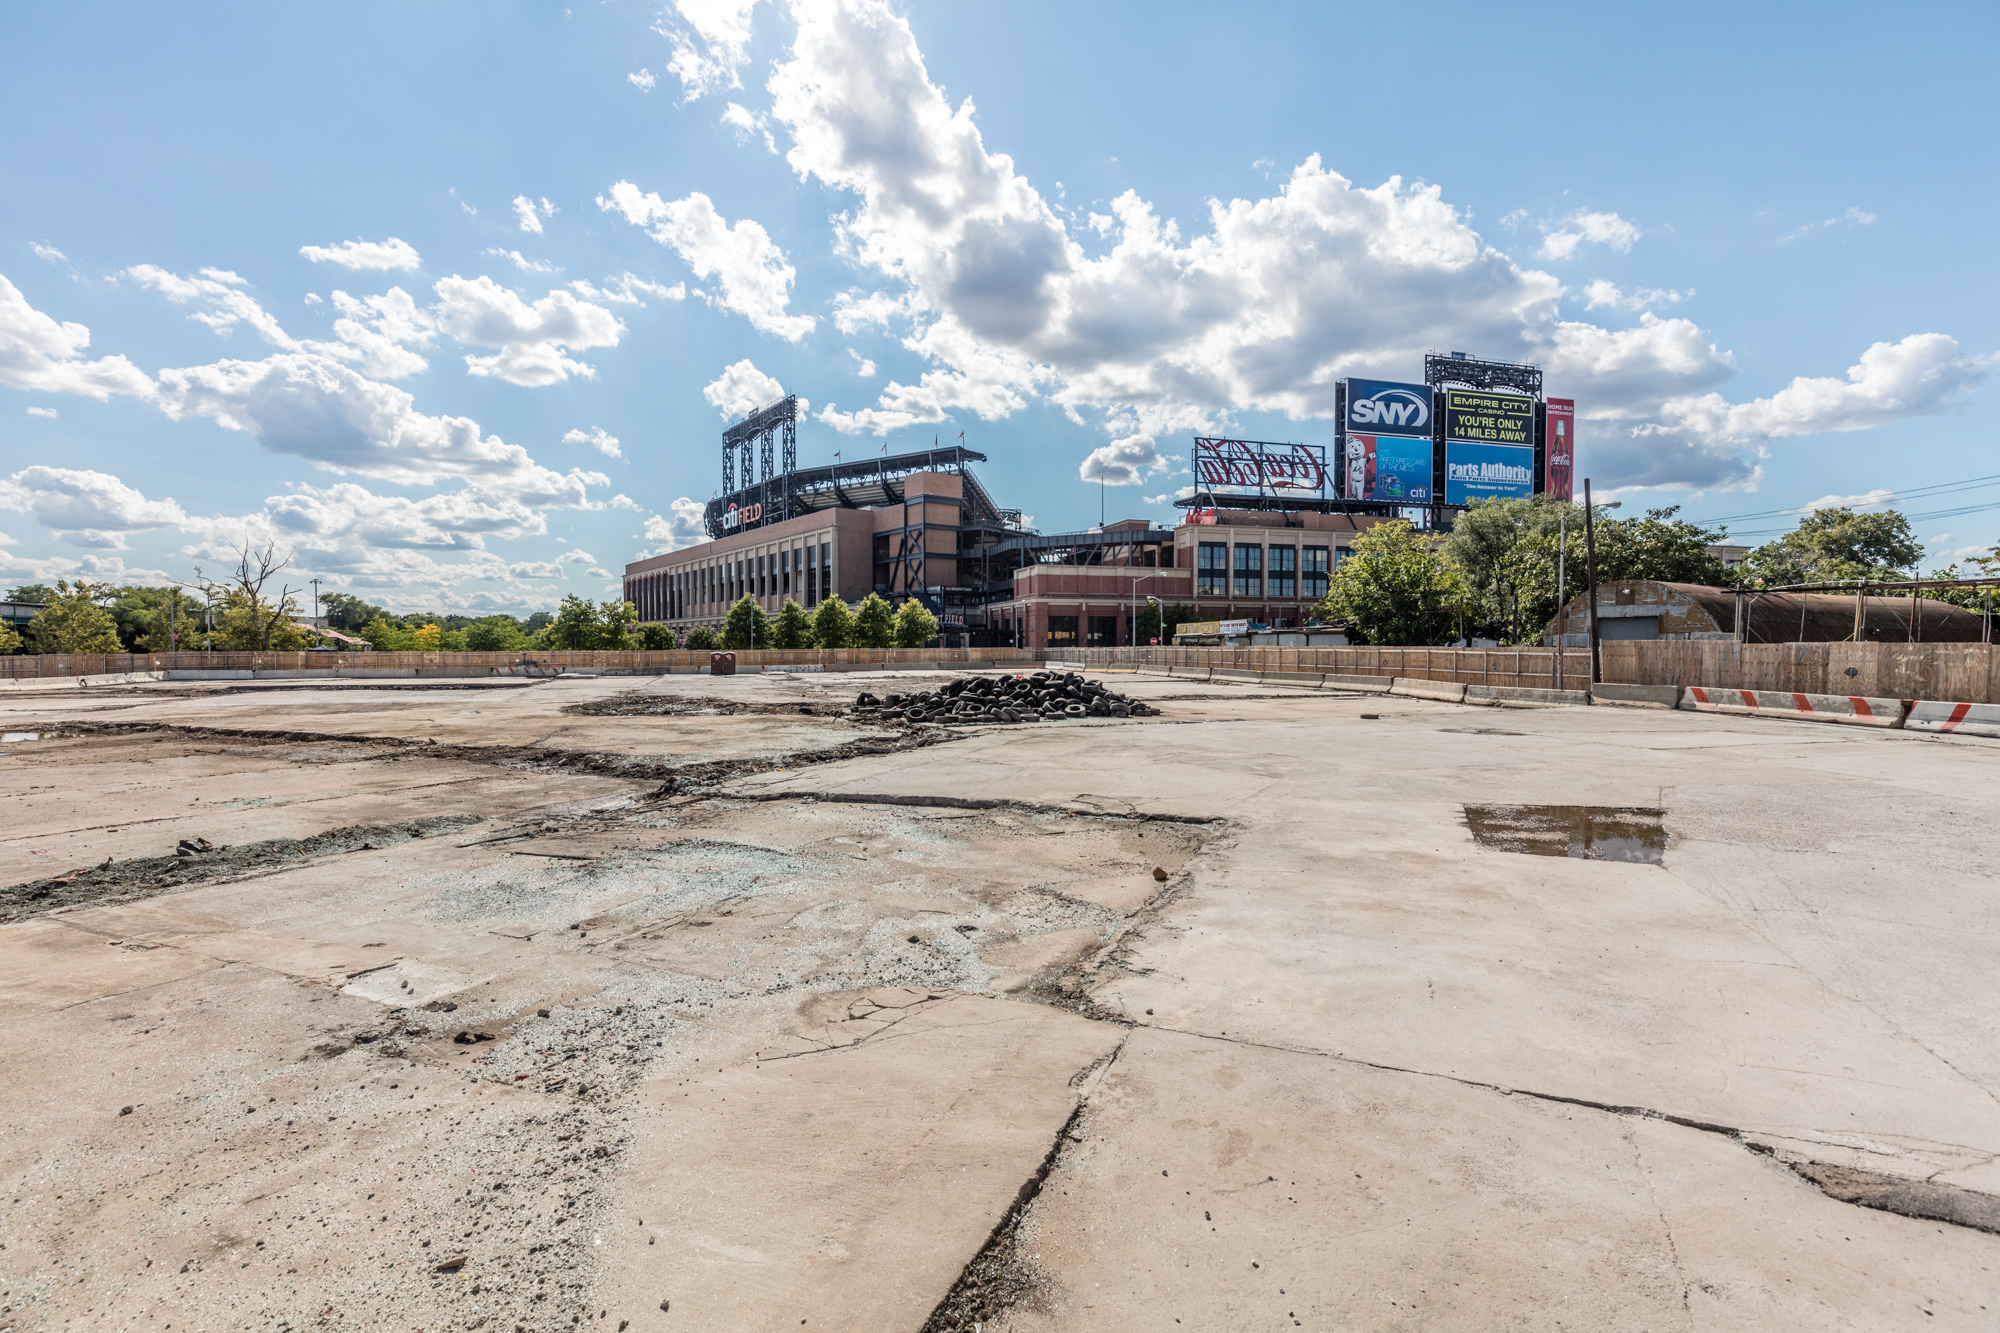 In the foreground is an empty lot. In the distance is a sports stadium.